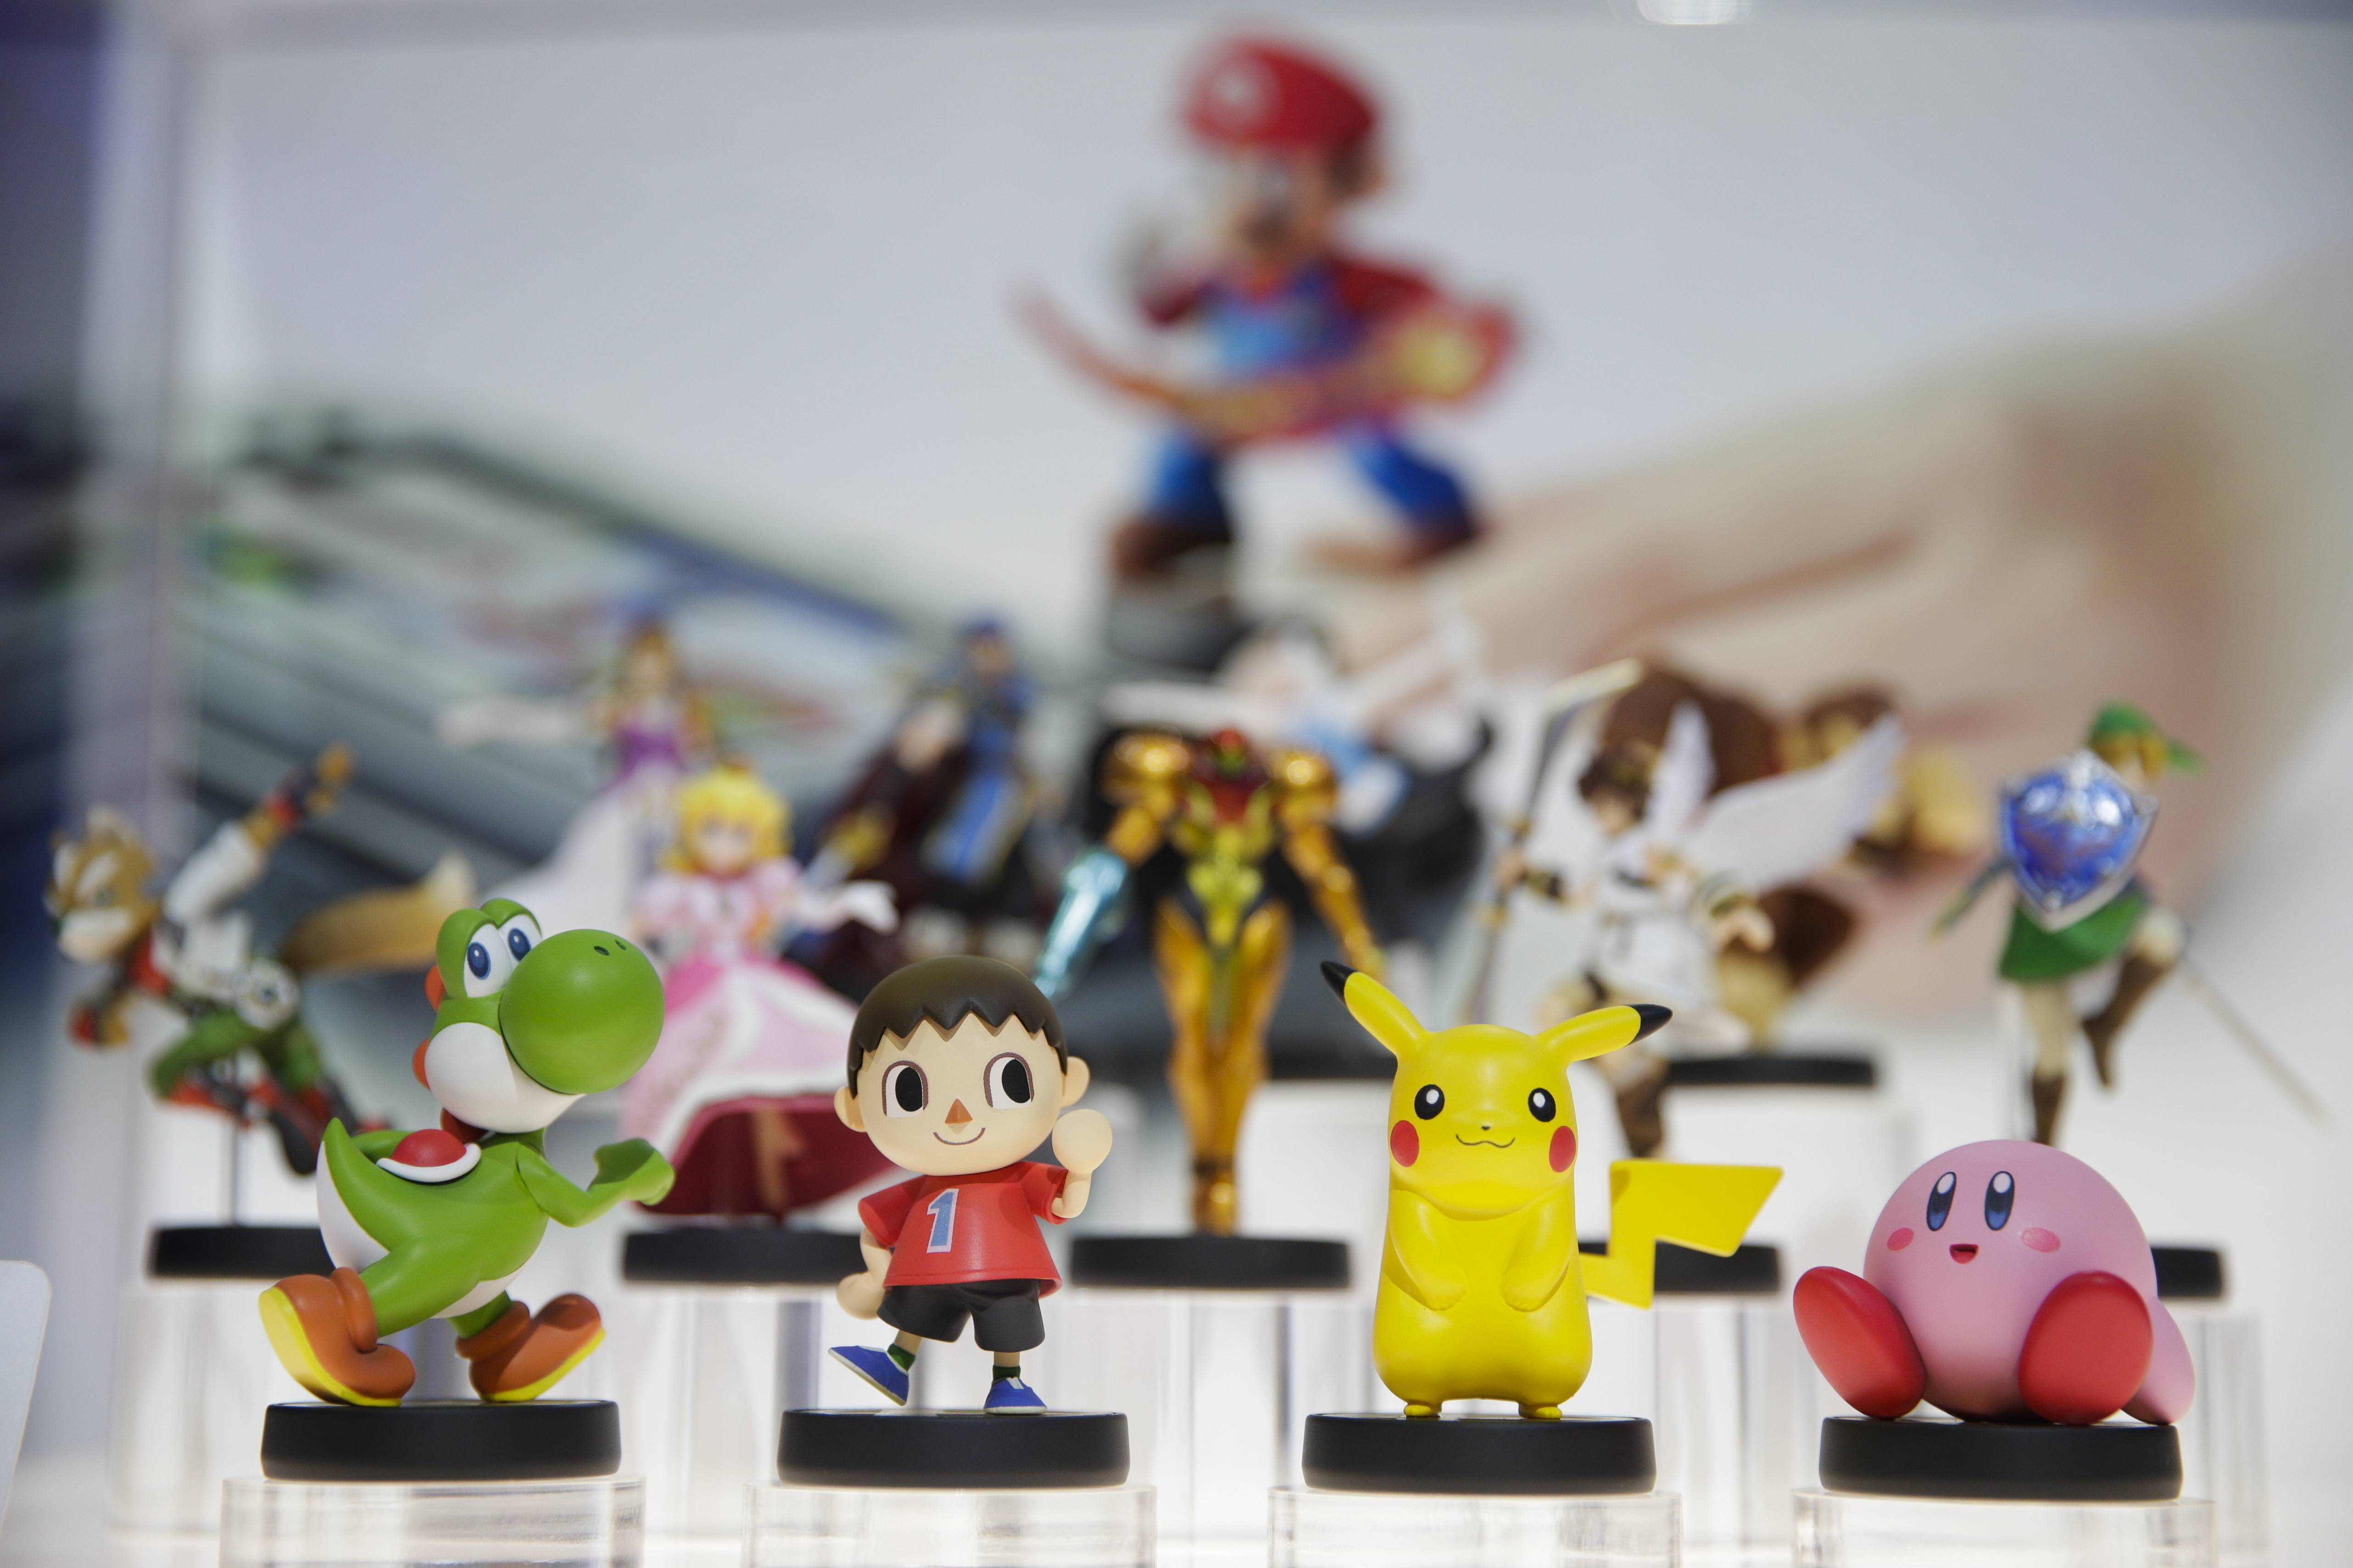 Amiibo characters for Wii U are on display at the Nintendo booth Tuesday during the Electronic Entertainment Expo in Los Angeles.